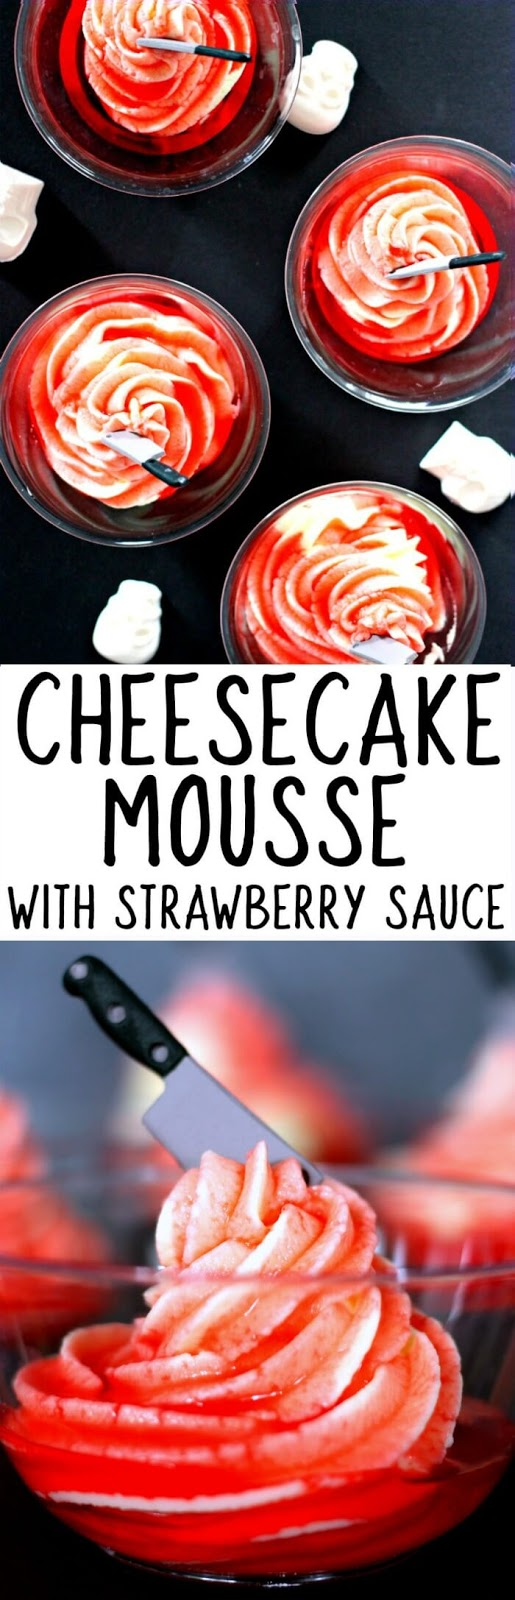 HOW TO MAKE TWO INGREDIENT CHEESECAKE MOUSSE WITH STRAWBERRY SAUCE